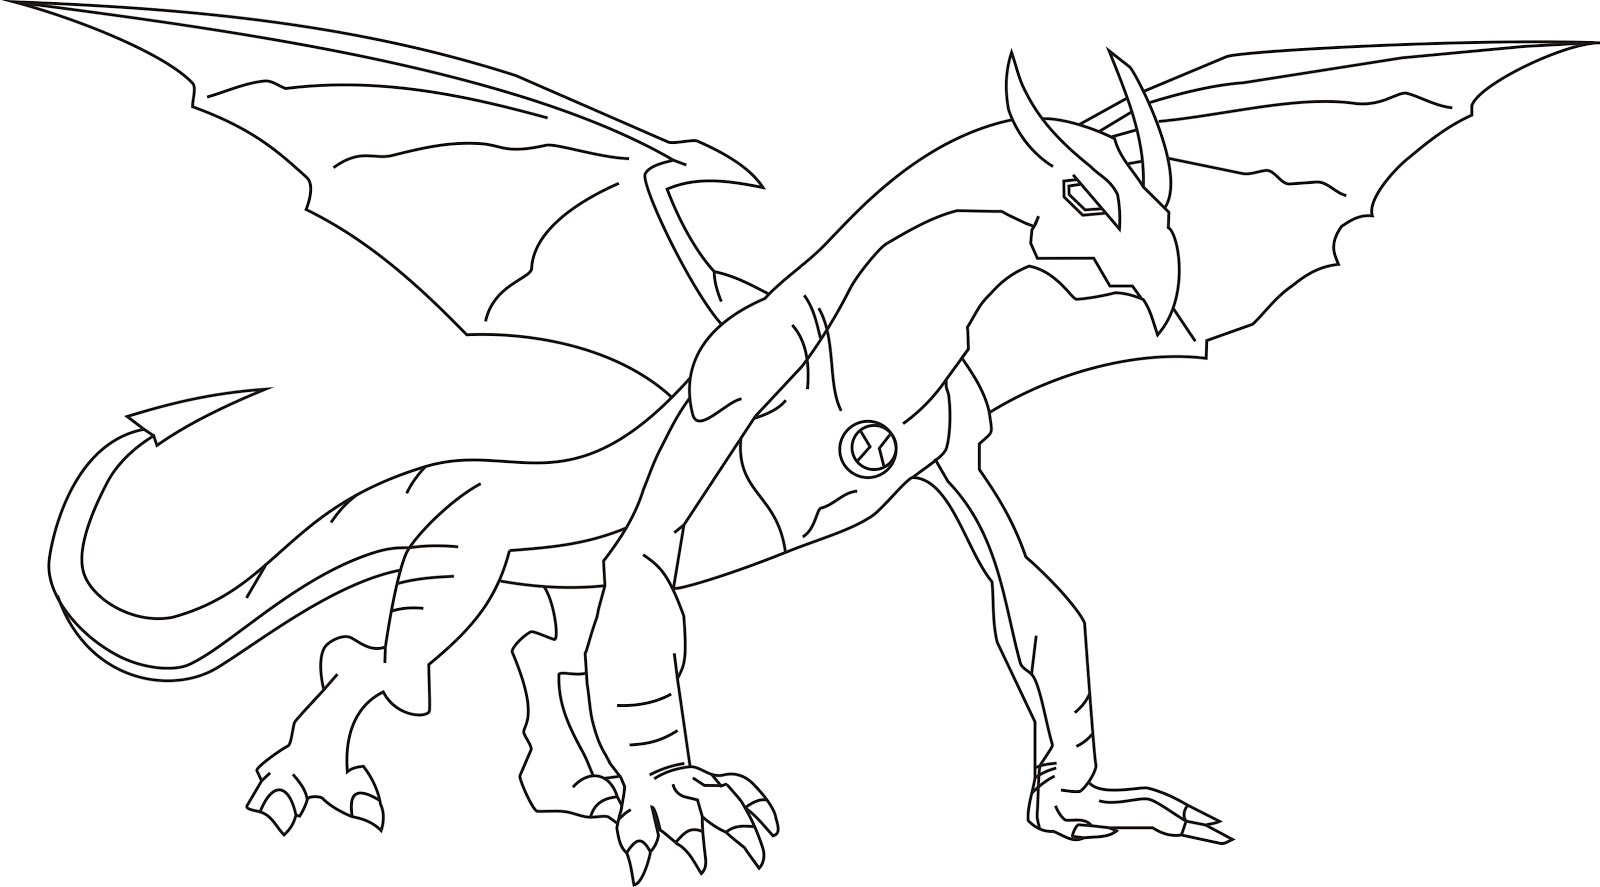 Ben 10 Ultimate Alien Coloring Pages - Democraciaejustica